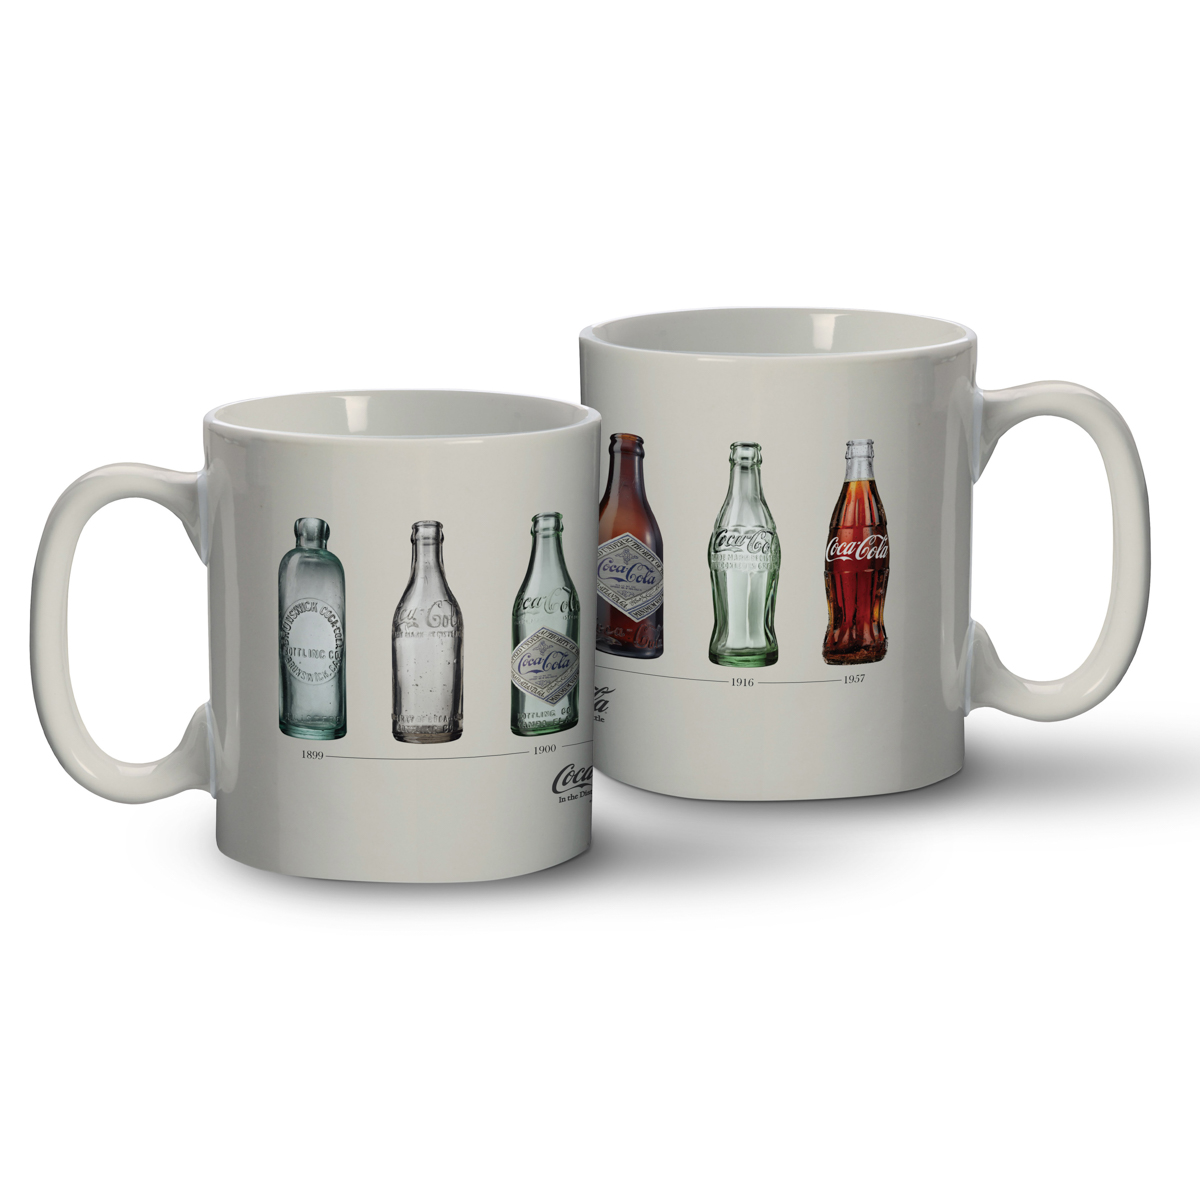 CANECA PORCELANA COCA-COLA BOTTLES EVOLUTION BRANCO 8x8x9,5 cm - 320ml